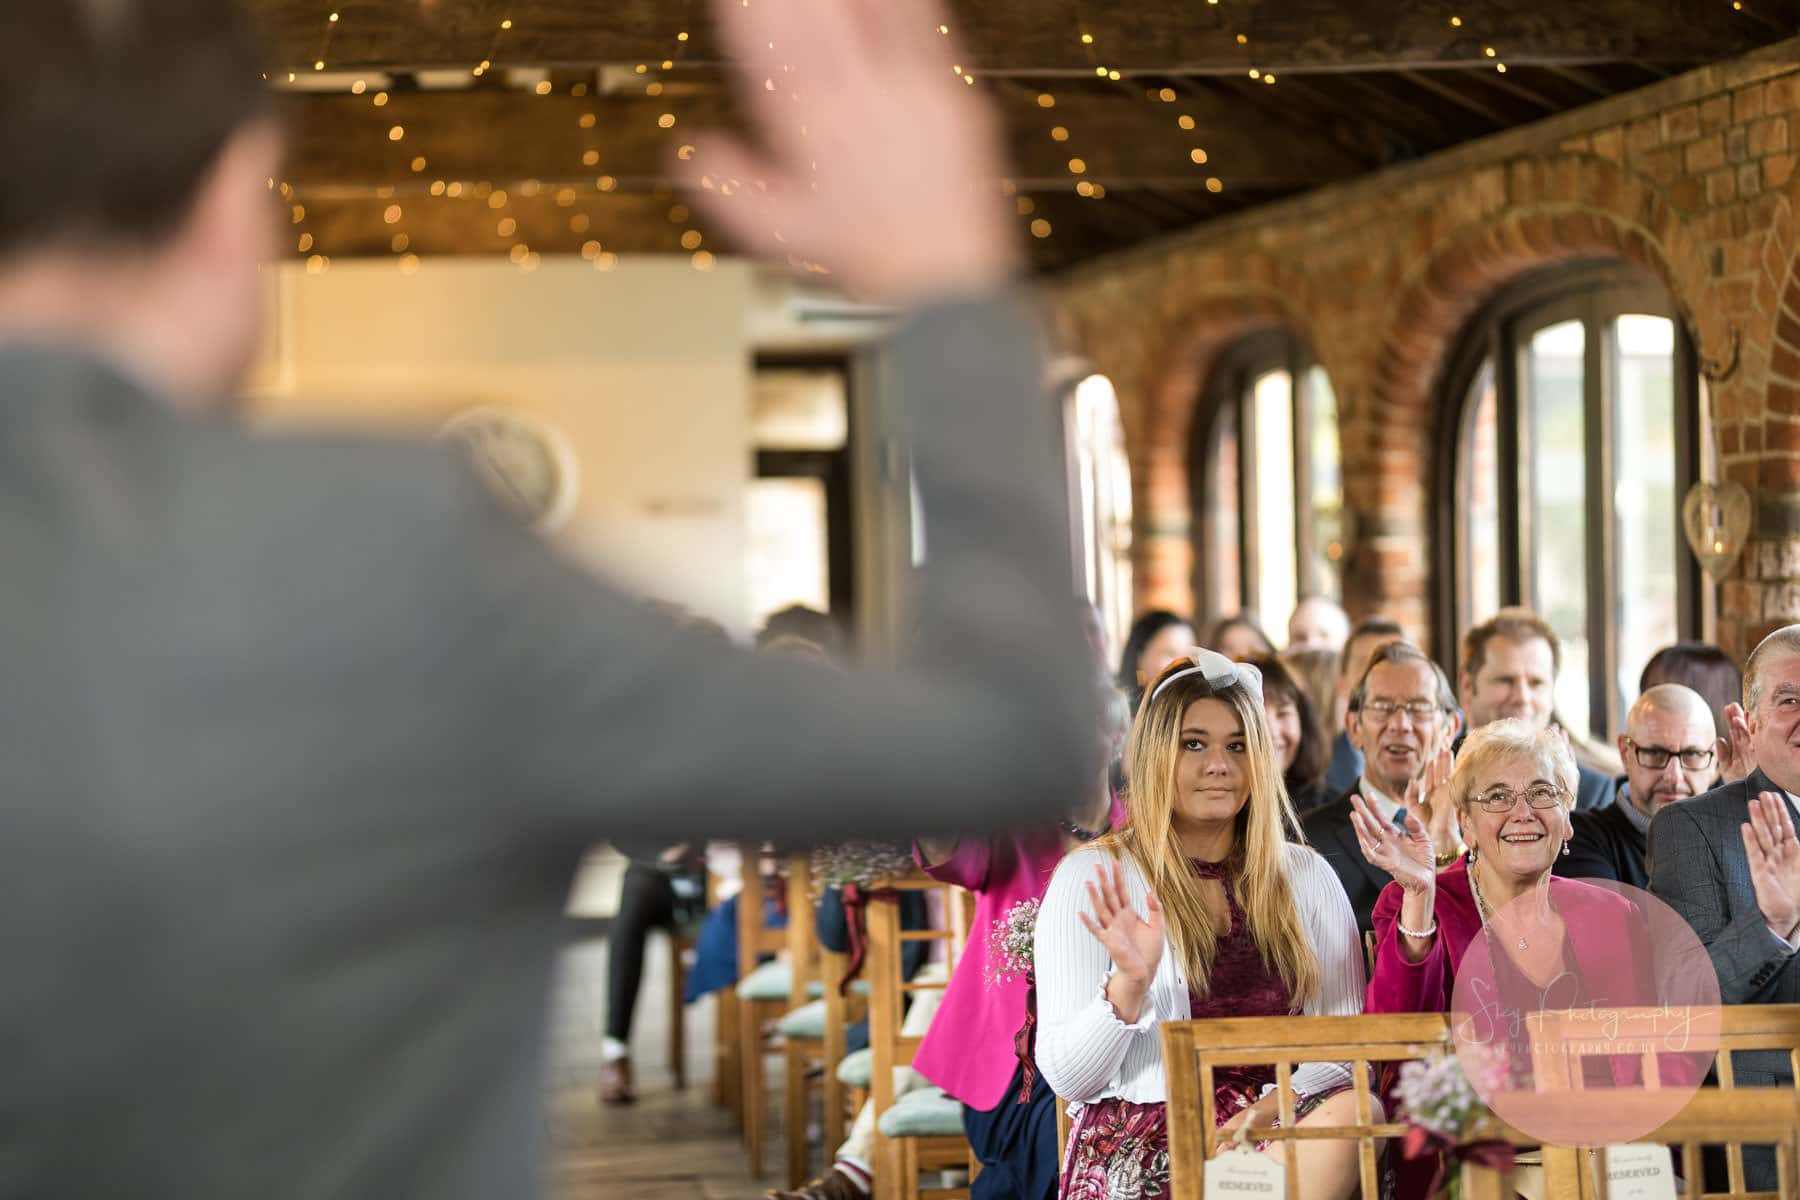 groom issues one last goodbye to his guests and they respond with a wave